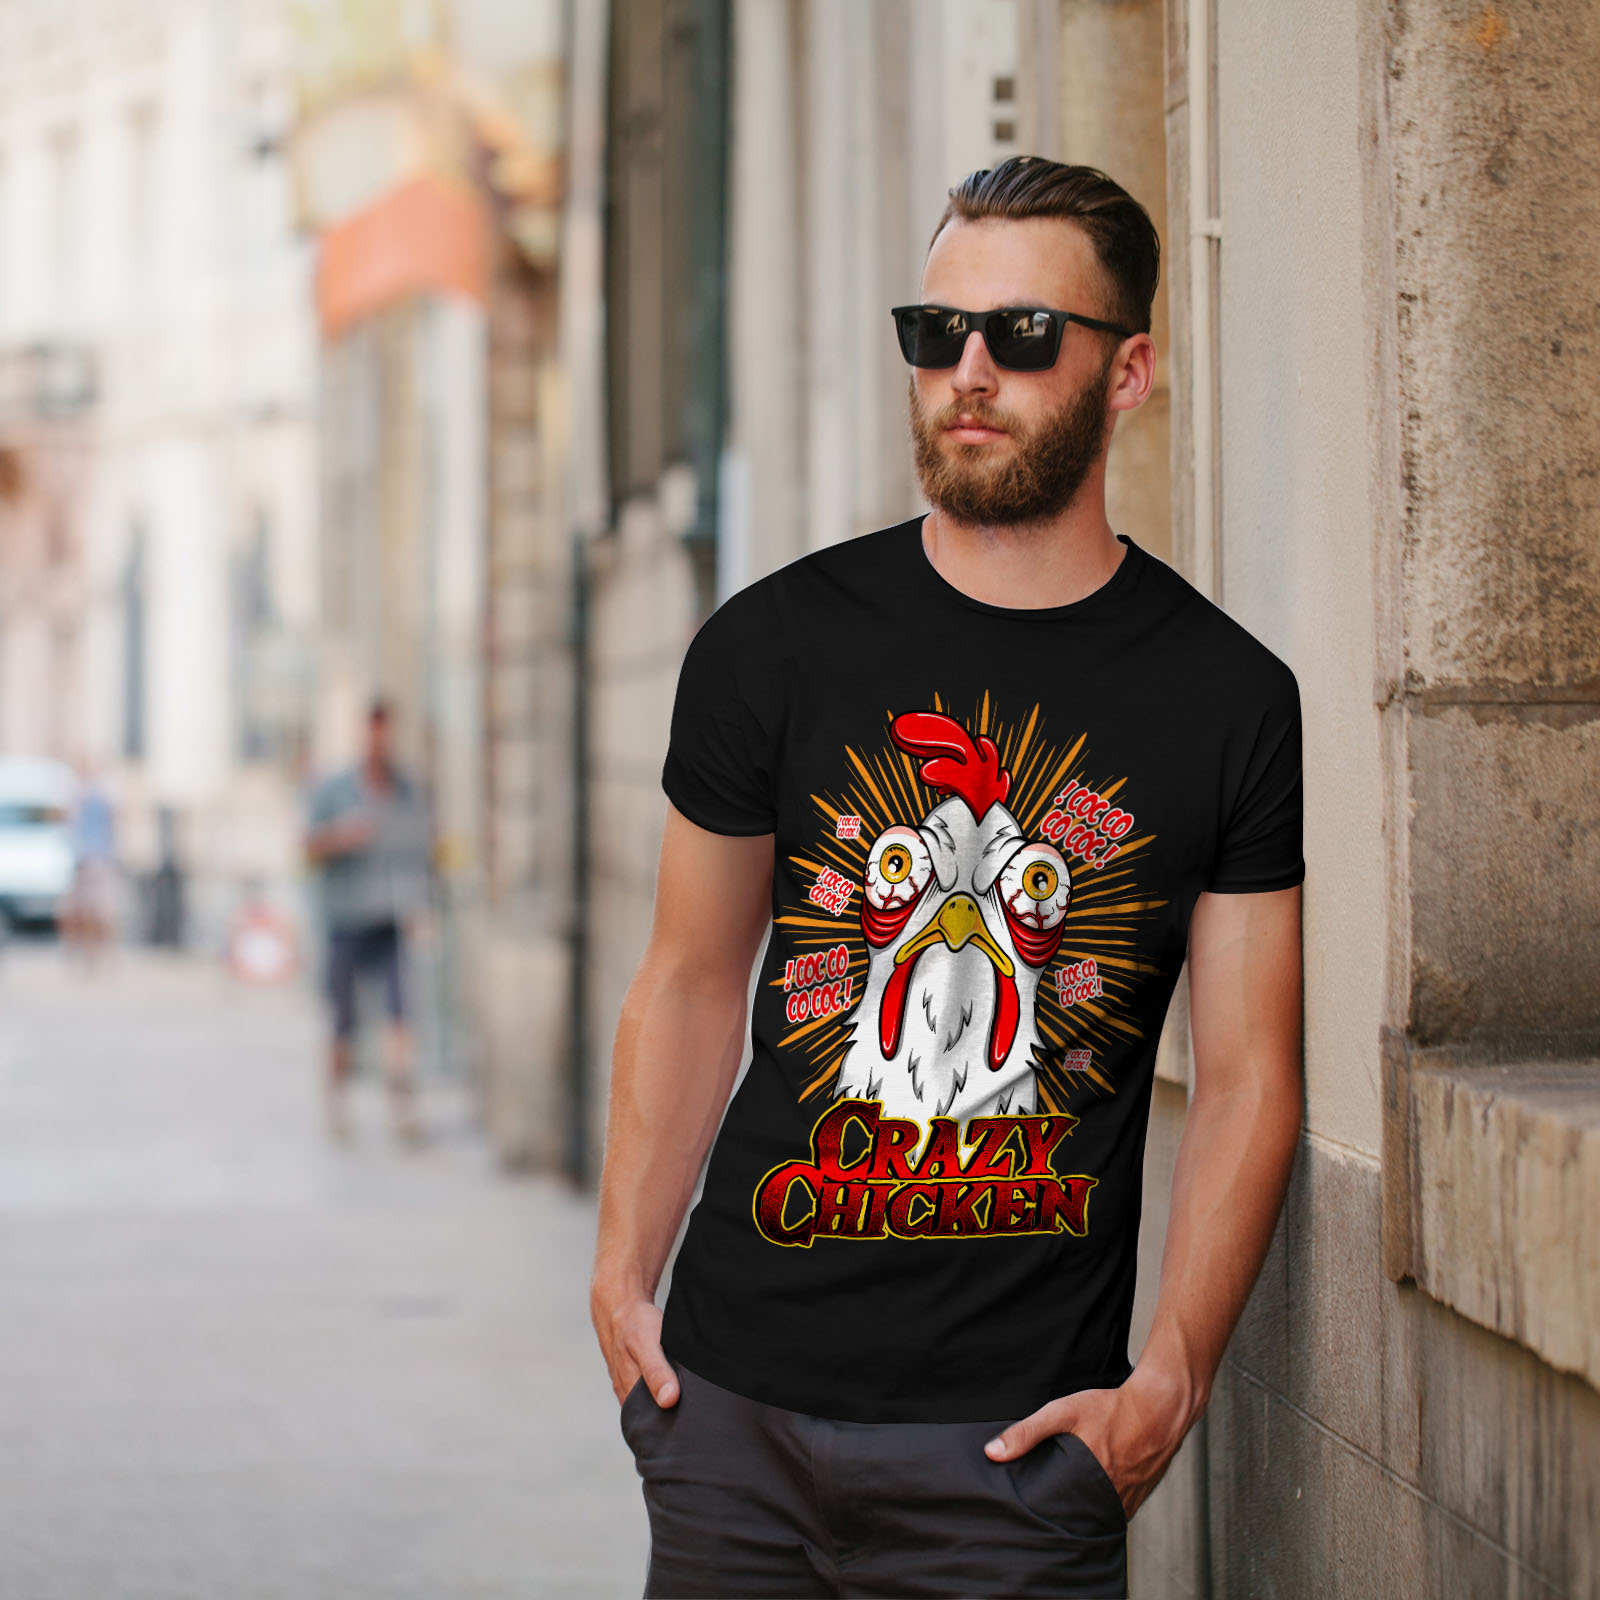 Wellcoda-Crazy-Chicken-Mens-T-shirt-Funny-Face-Graphic-Design-Printed-Tee thumbnail 5